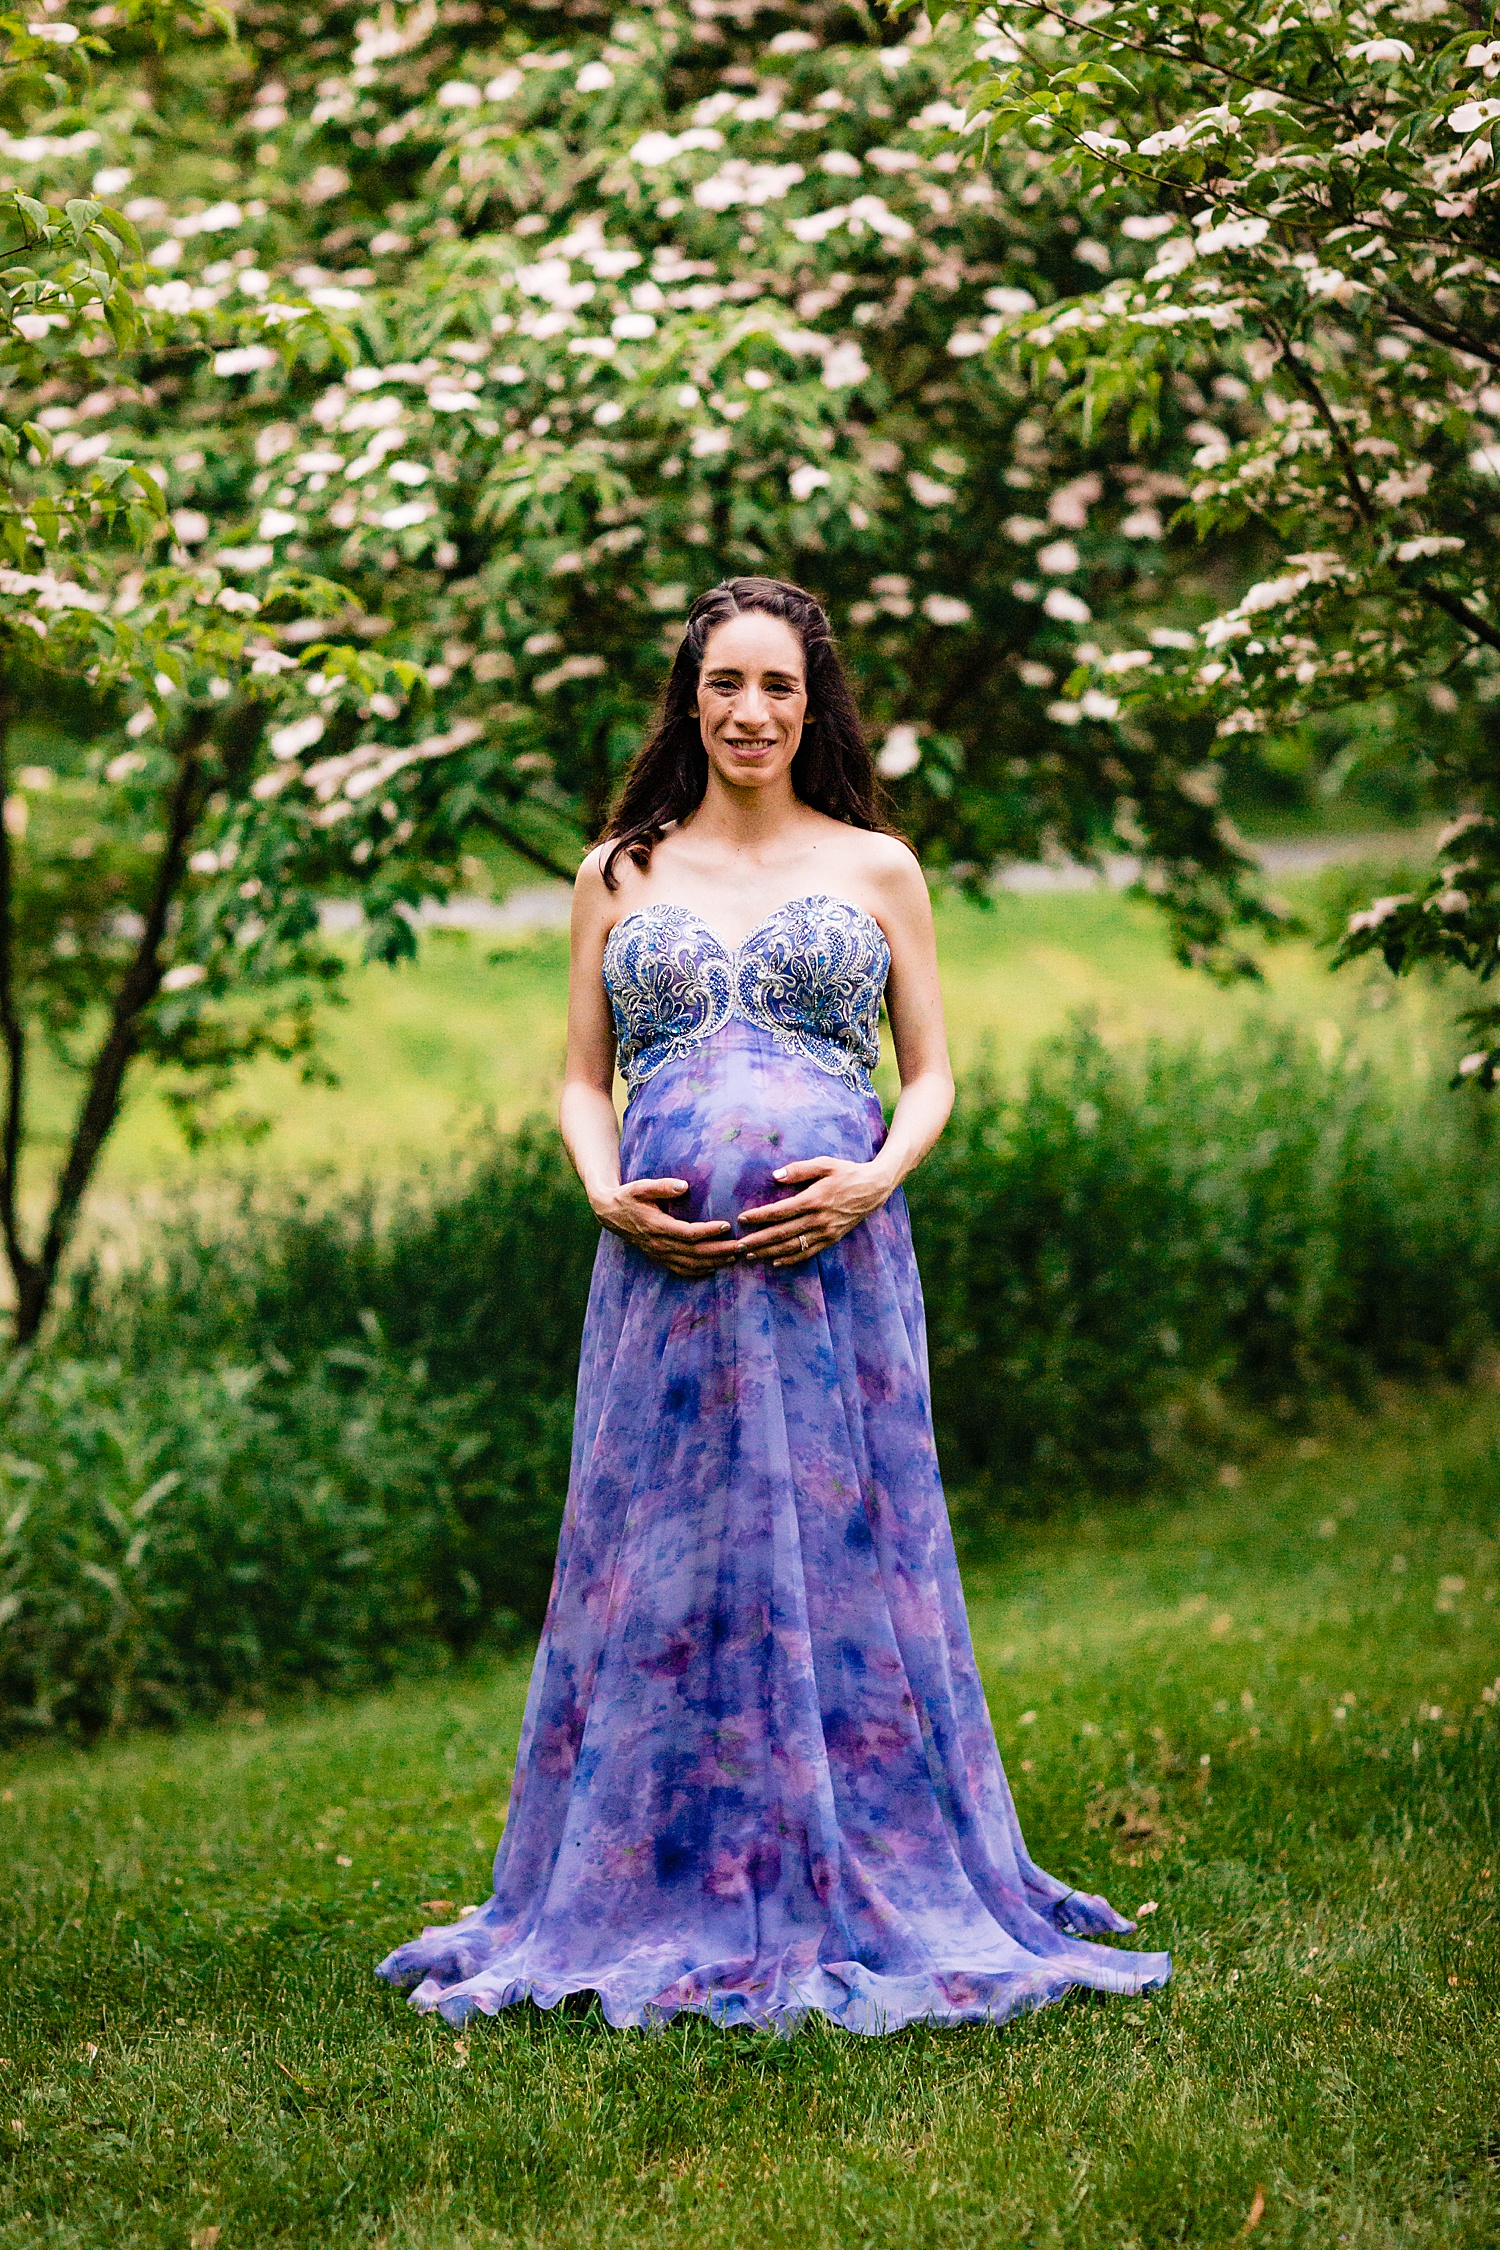 Gring's Grings Mill Red Covered Bridge Heritage Center Wyomissing Pennsylvania maternity session portrait photographer